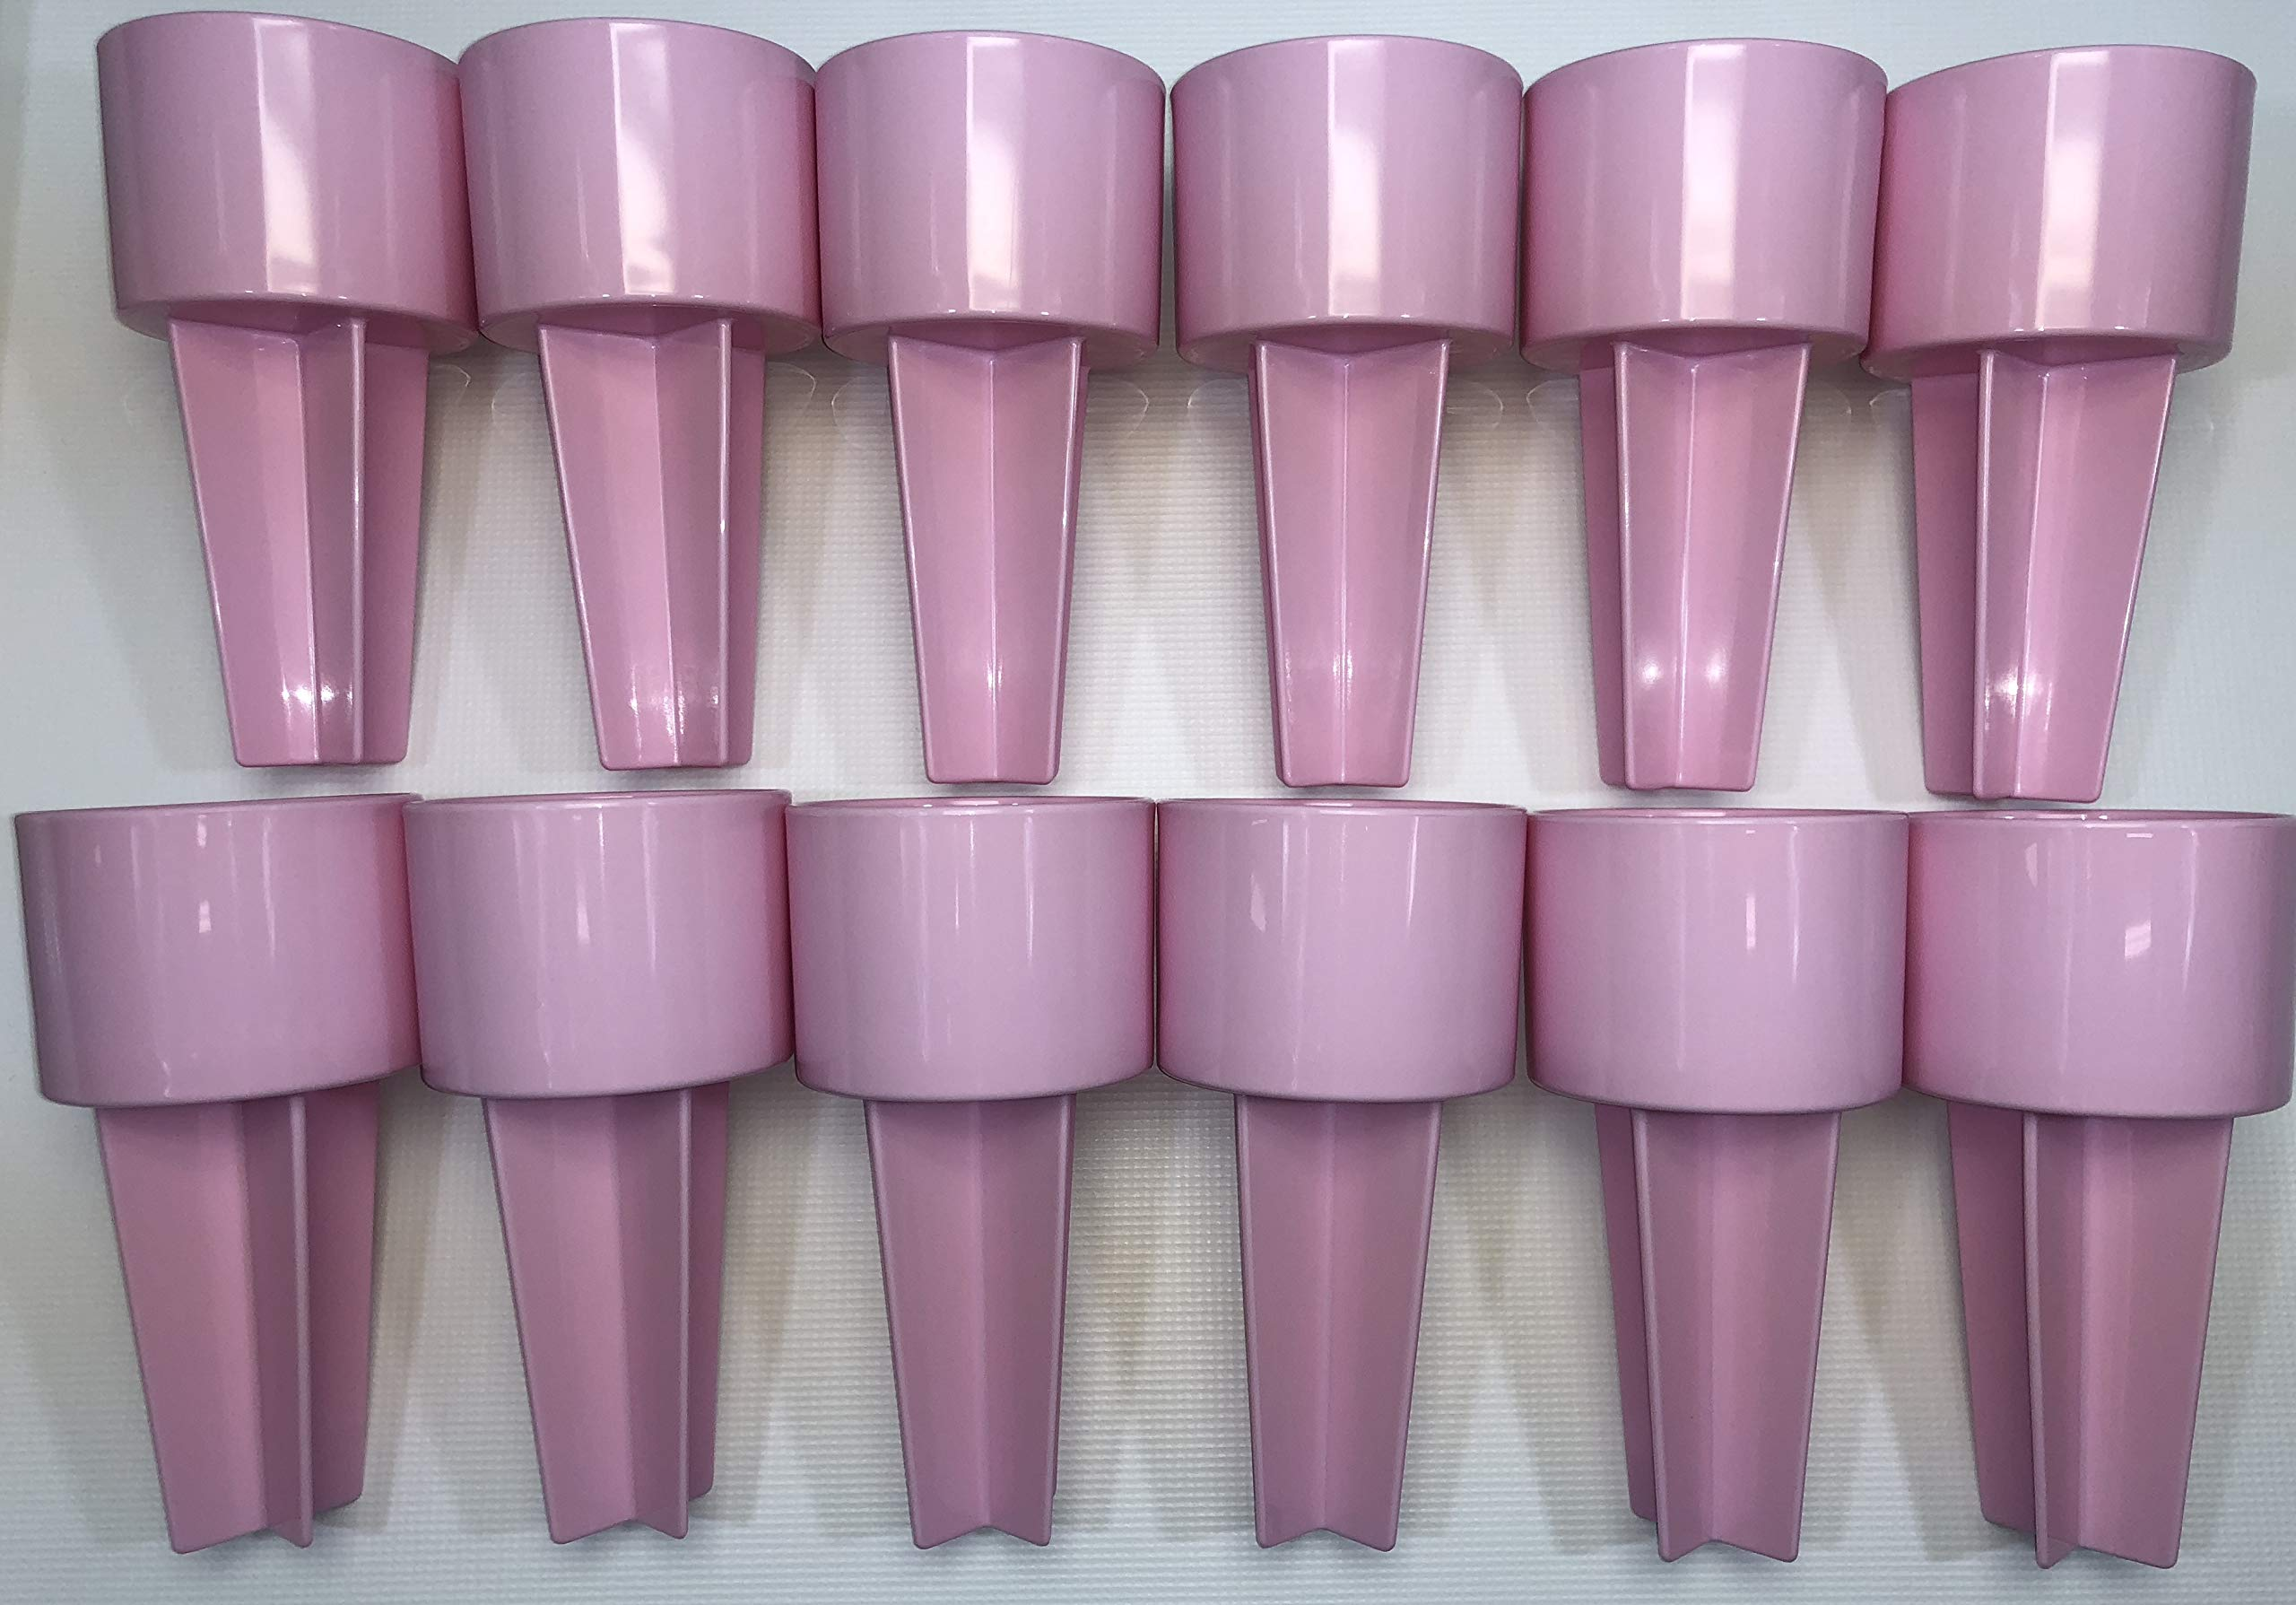 SPIKER Lifestyle Holder: for the beach & sofa: holds drinks & more. Set of 12 in BLUSH color, decorate as you wish